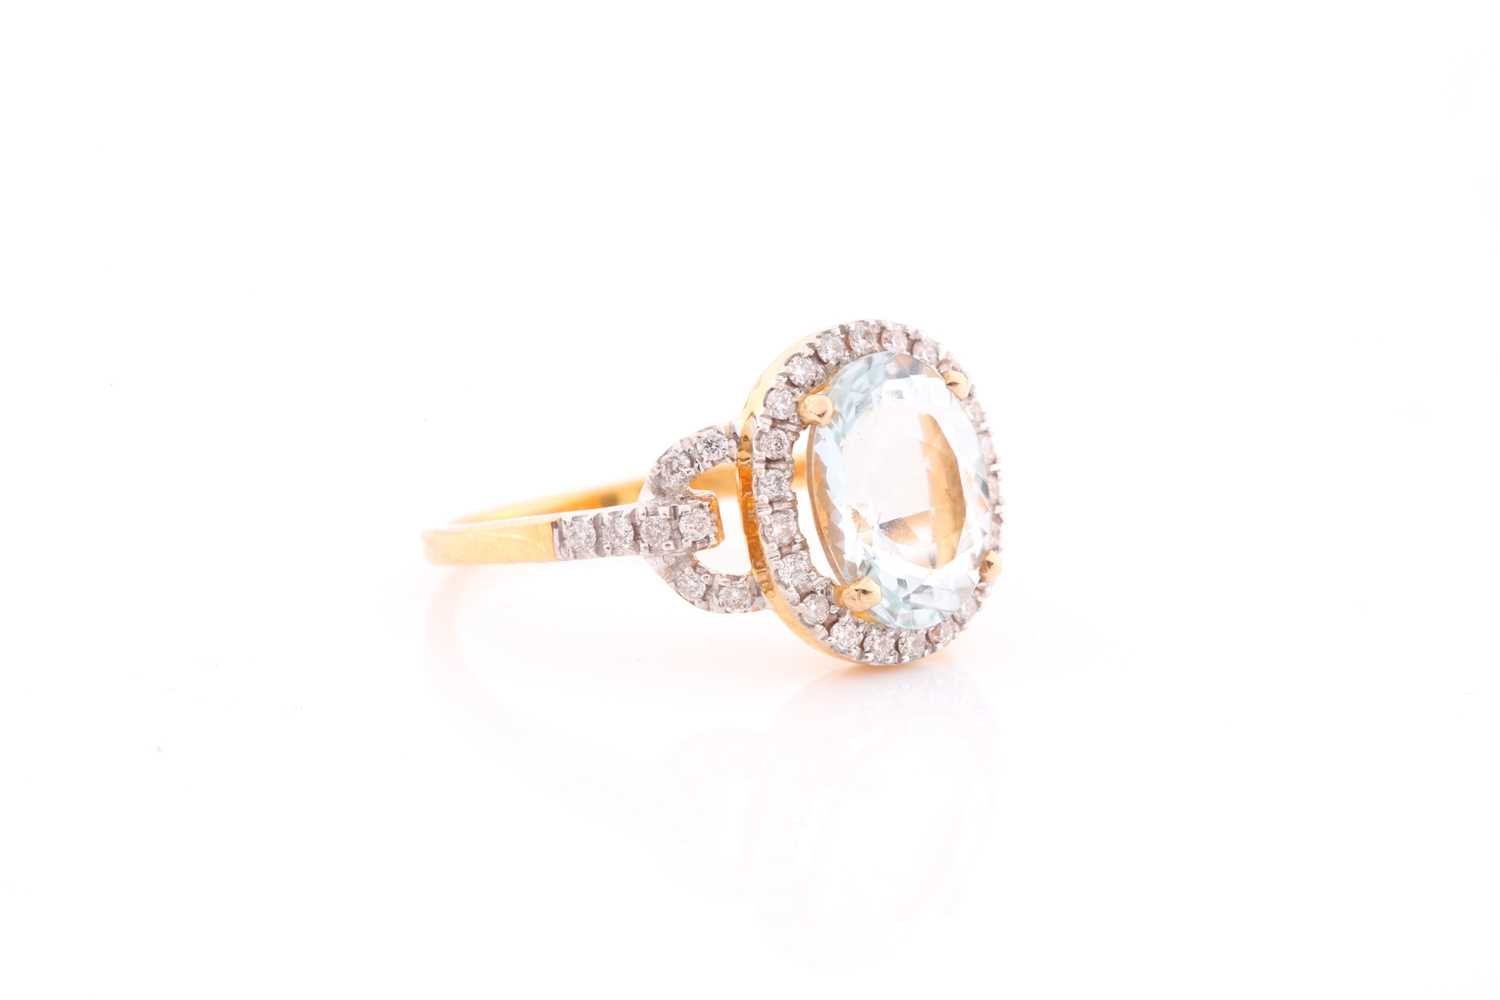 A diamond and aquamarine ring, set with a mixed oval-cut aquamarine of approximatley 2.30 carats, - Image 4 of 4